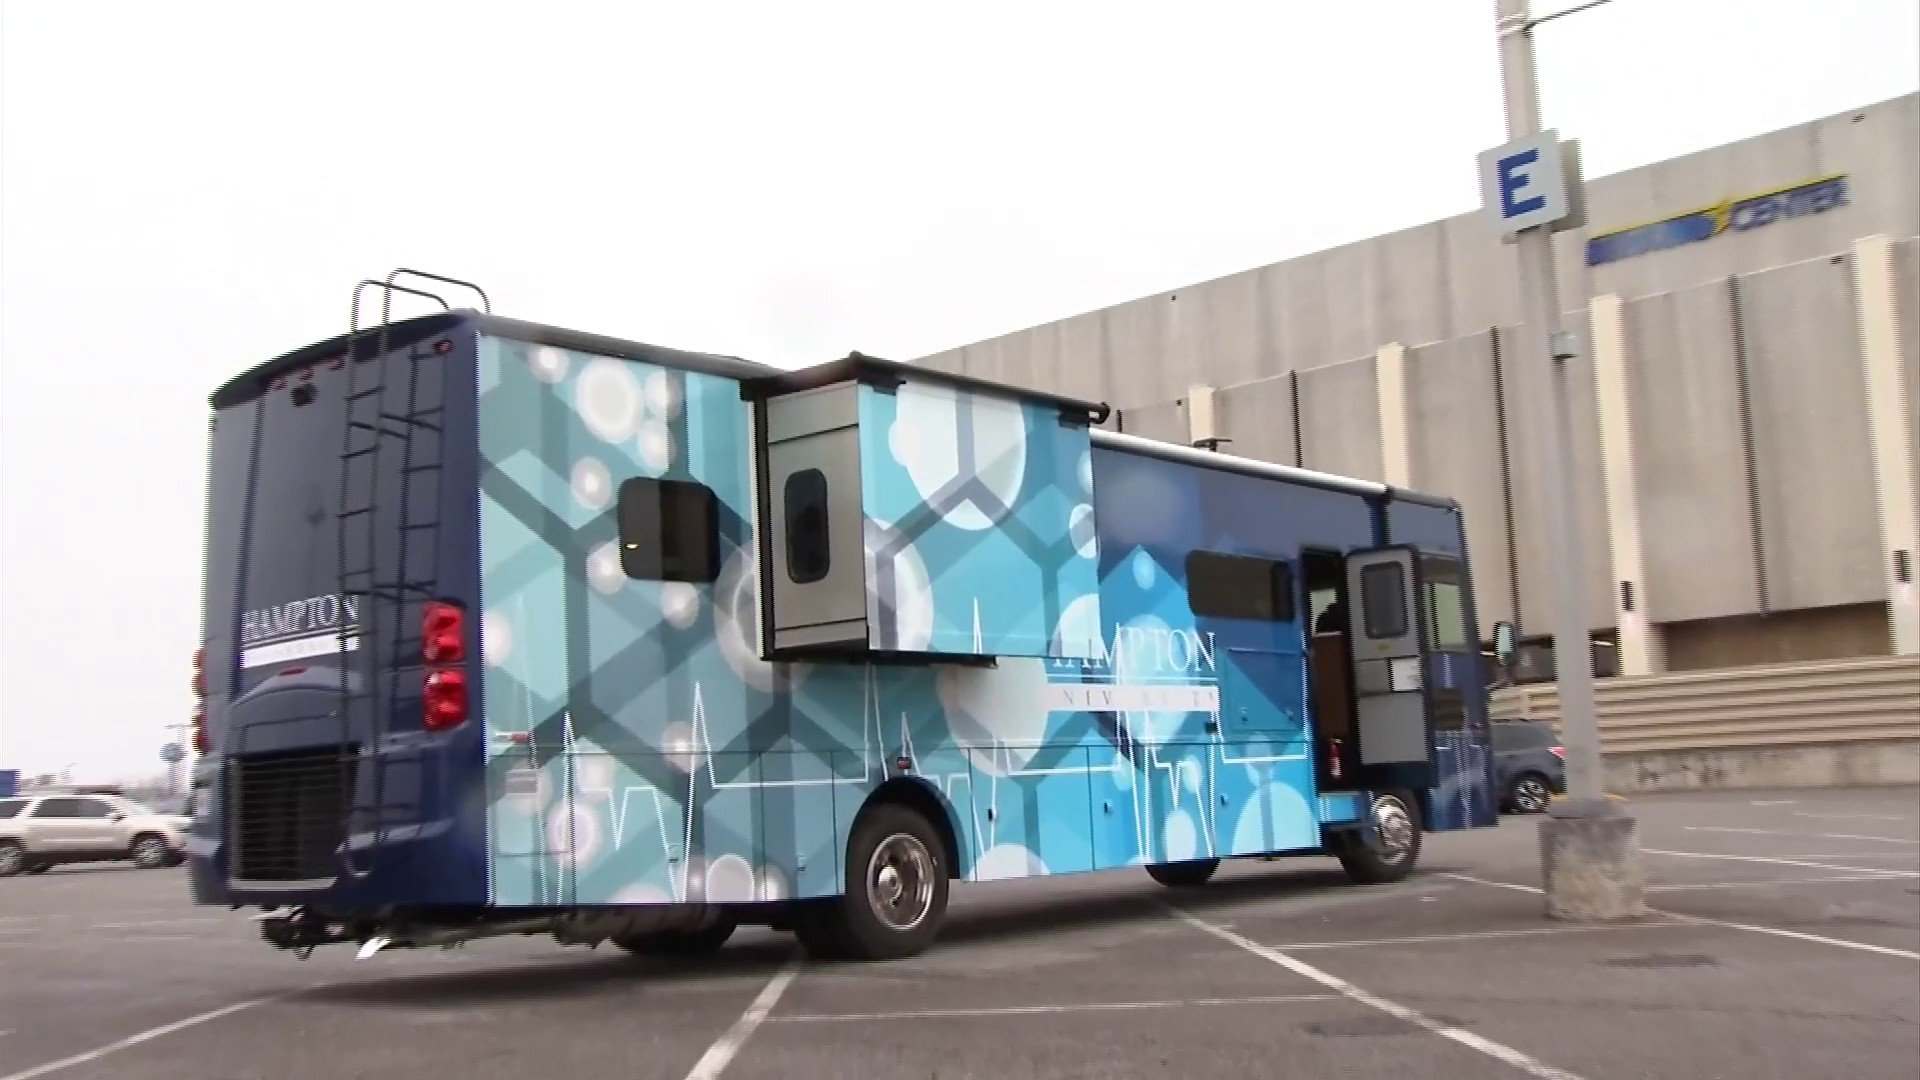 COVID-19 rural clinic bus made in Roanoke could be first of many